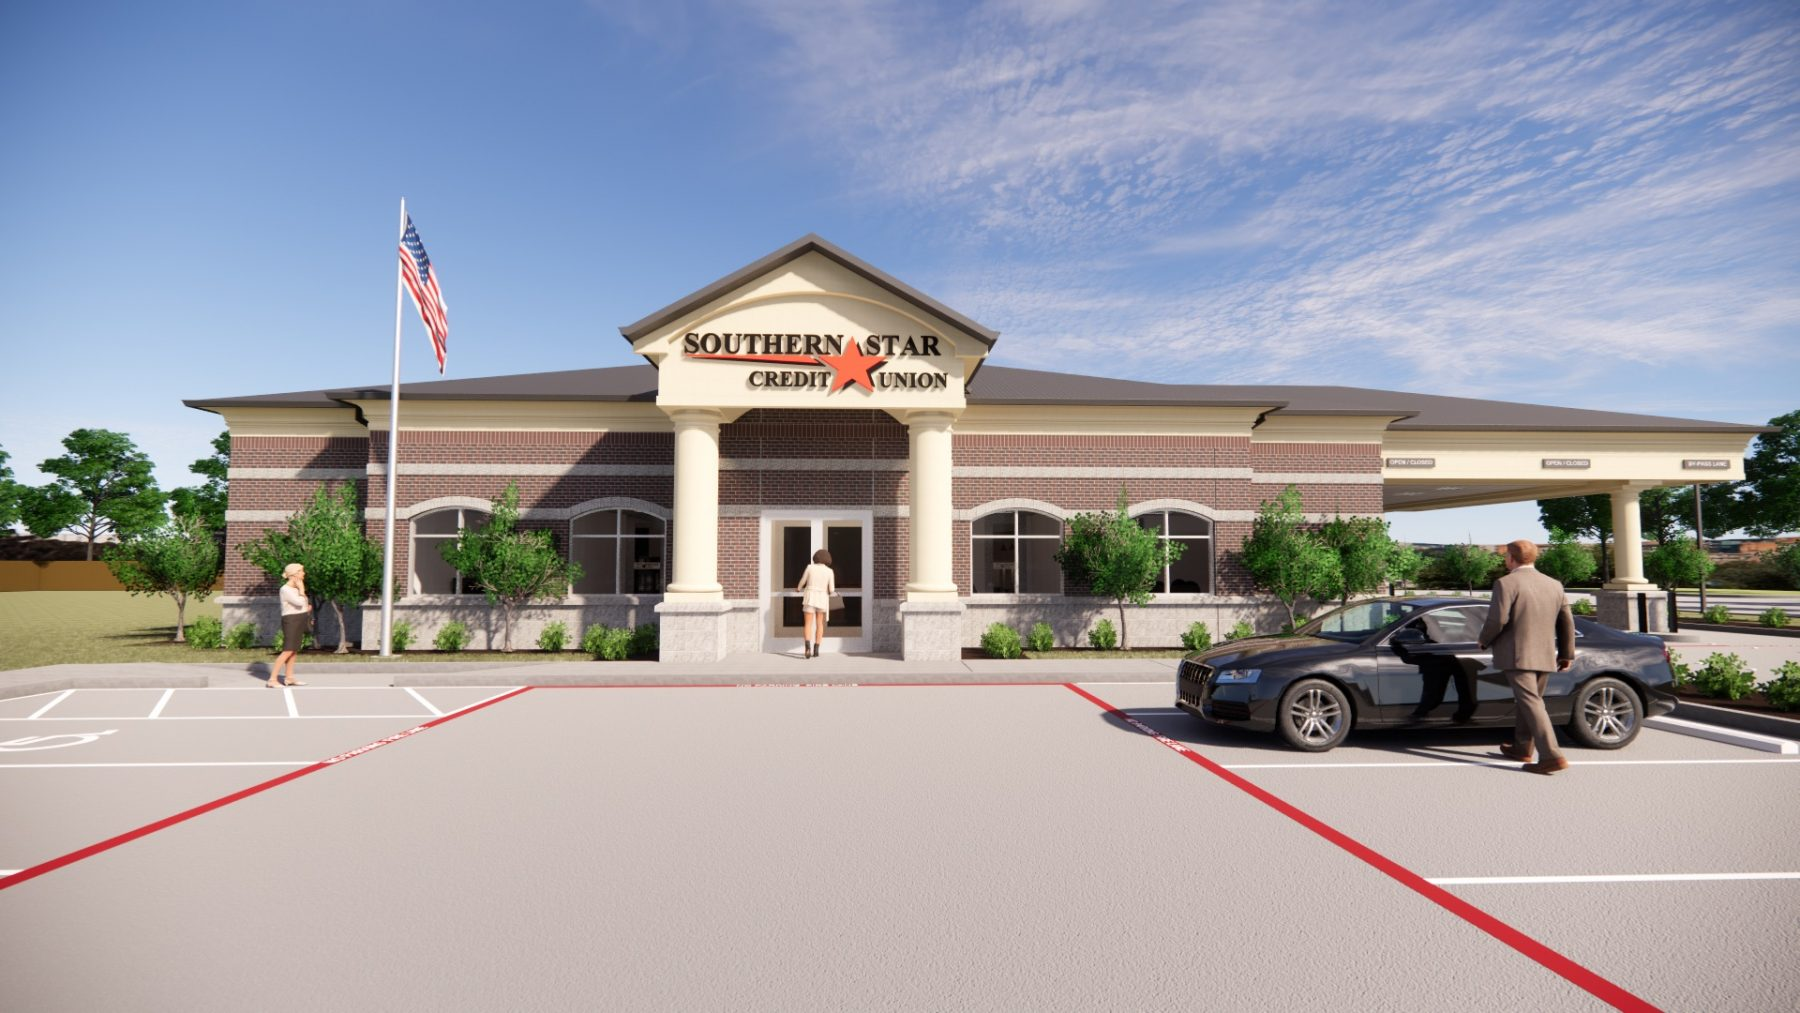 Southern Star Credit Union - Exterior Rendering